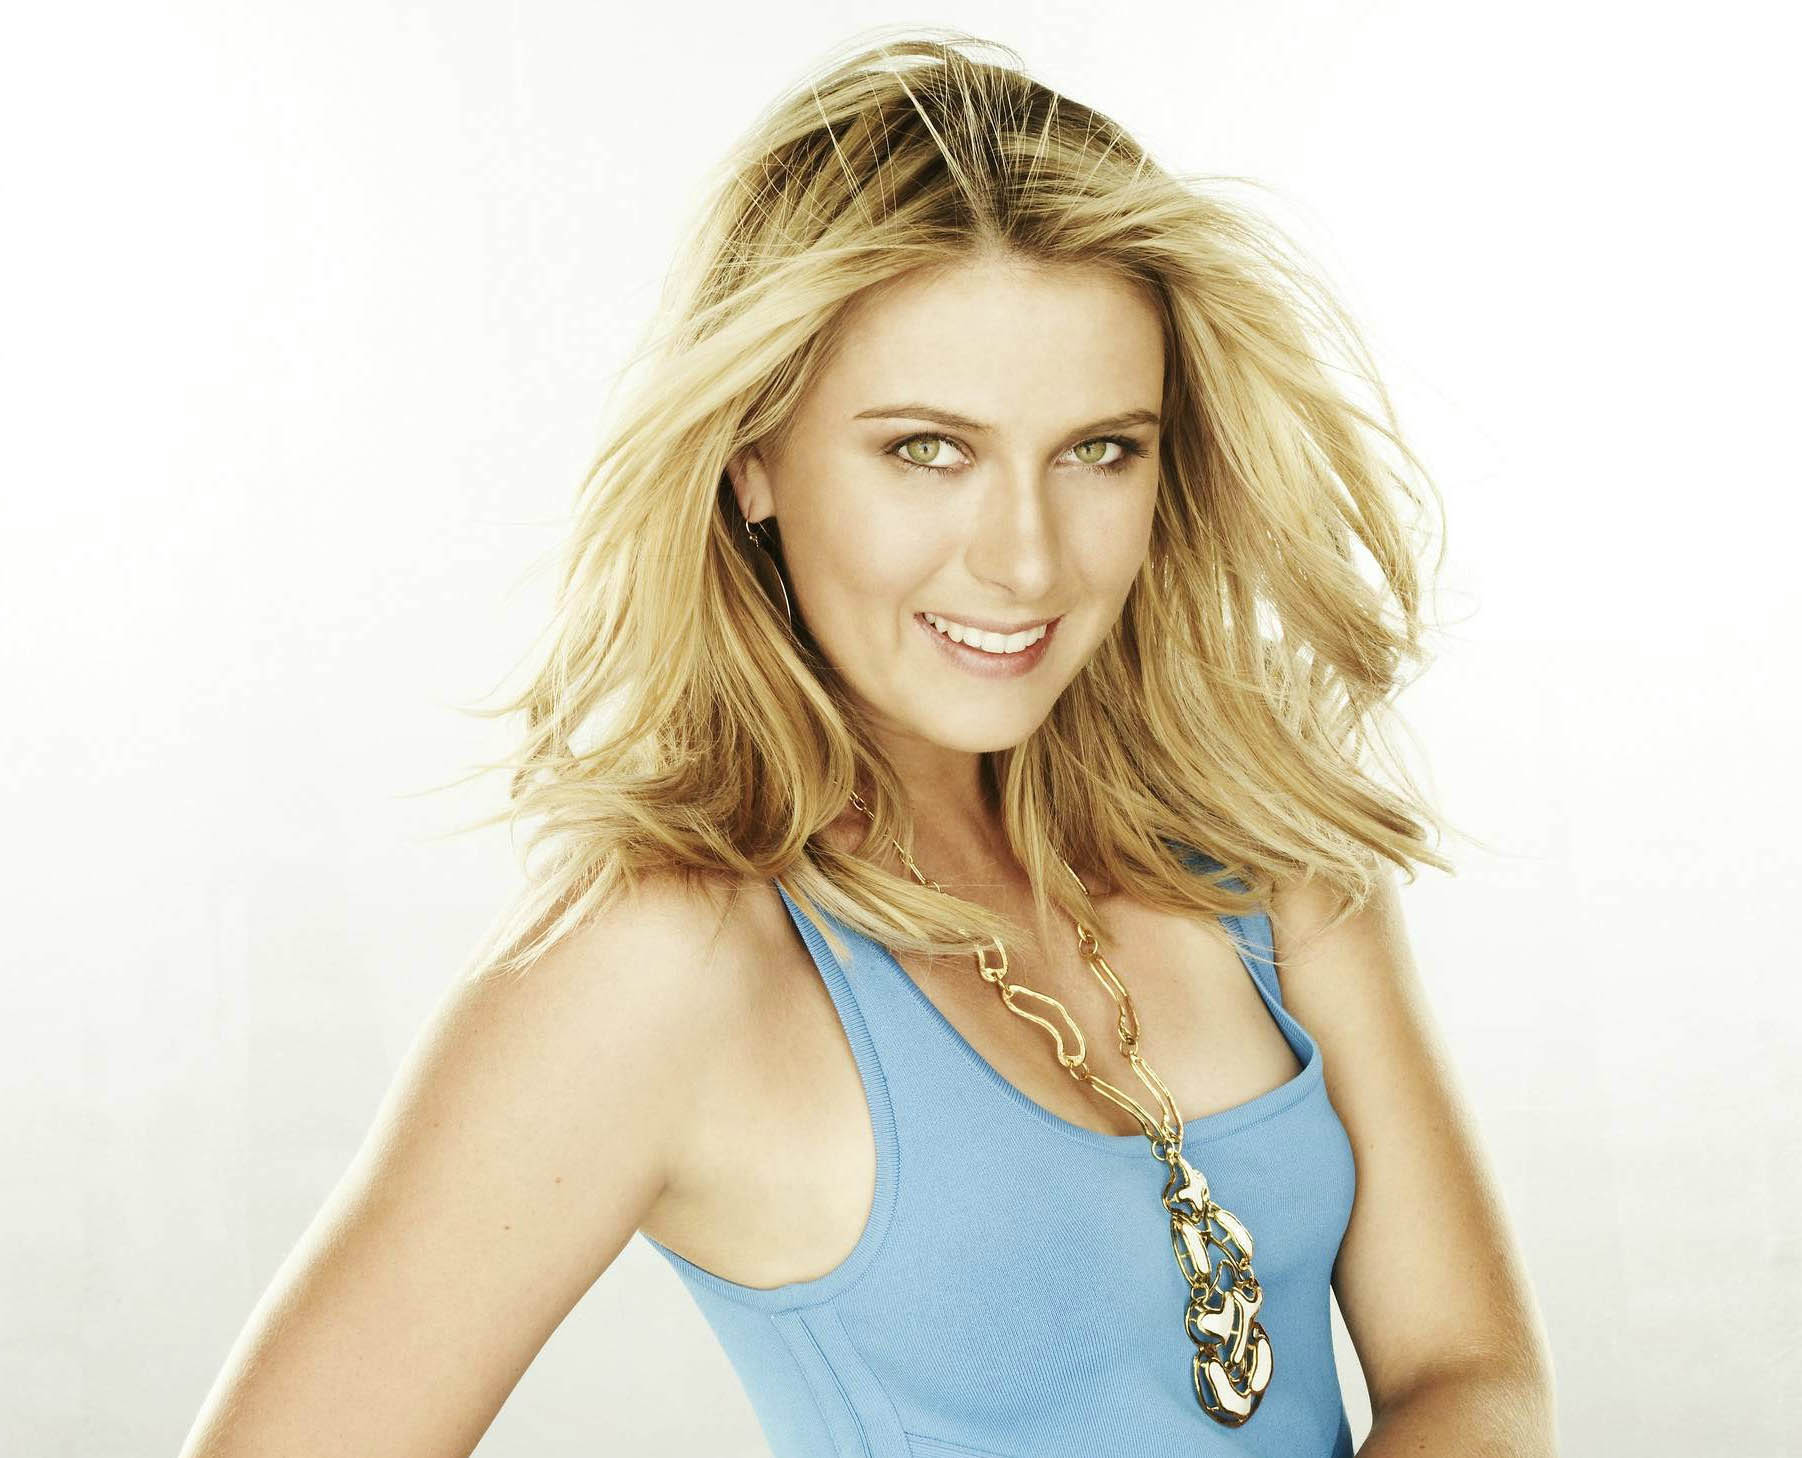 maria sharapova best wallpapers 2018 - all hd